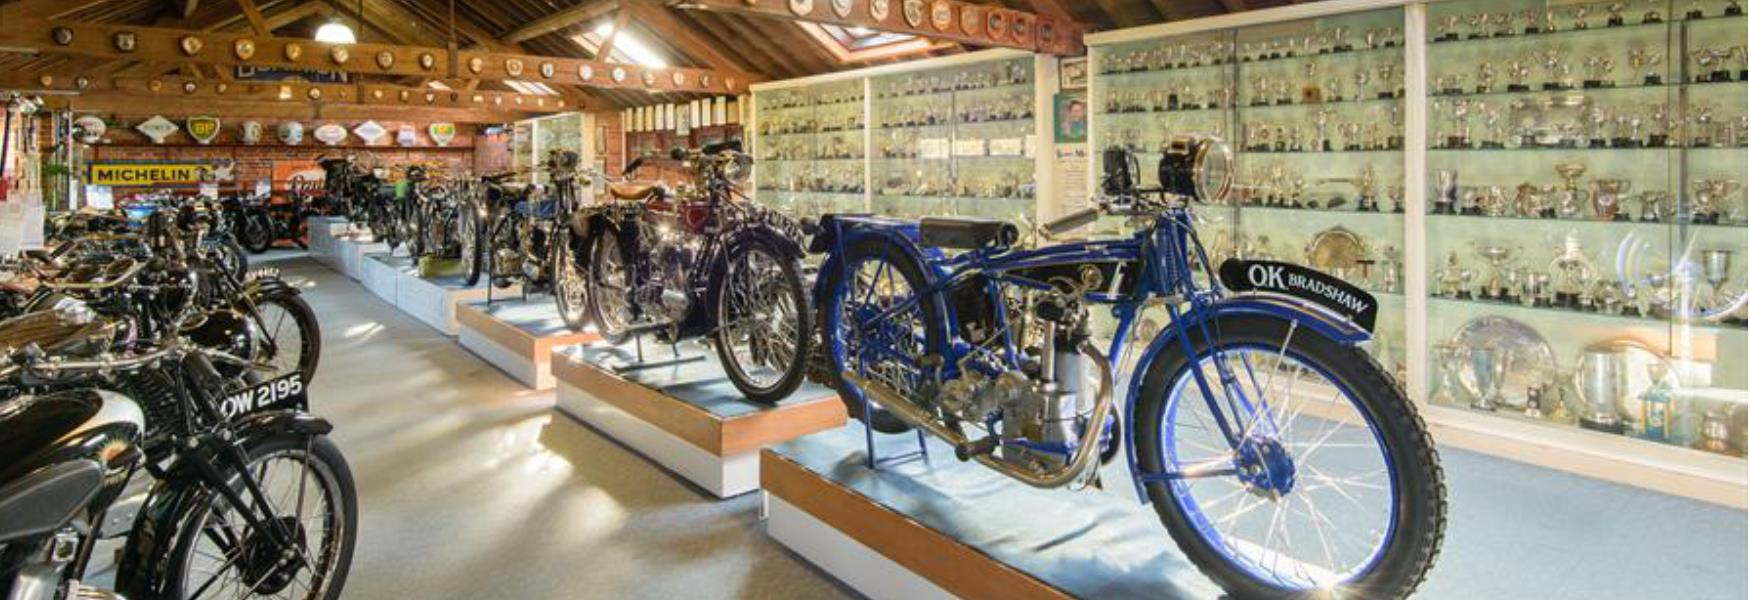 motorcycle museum attraction at sammy millers in the new forest